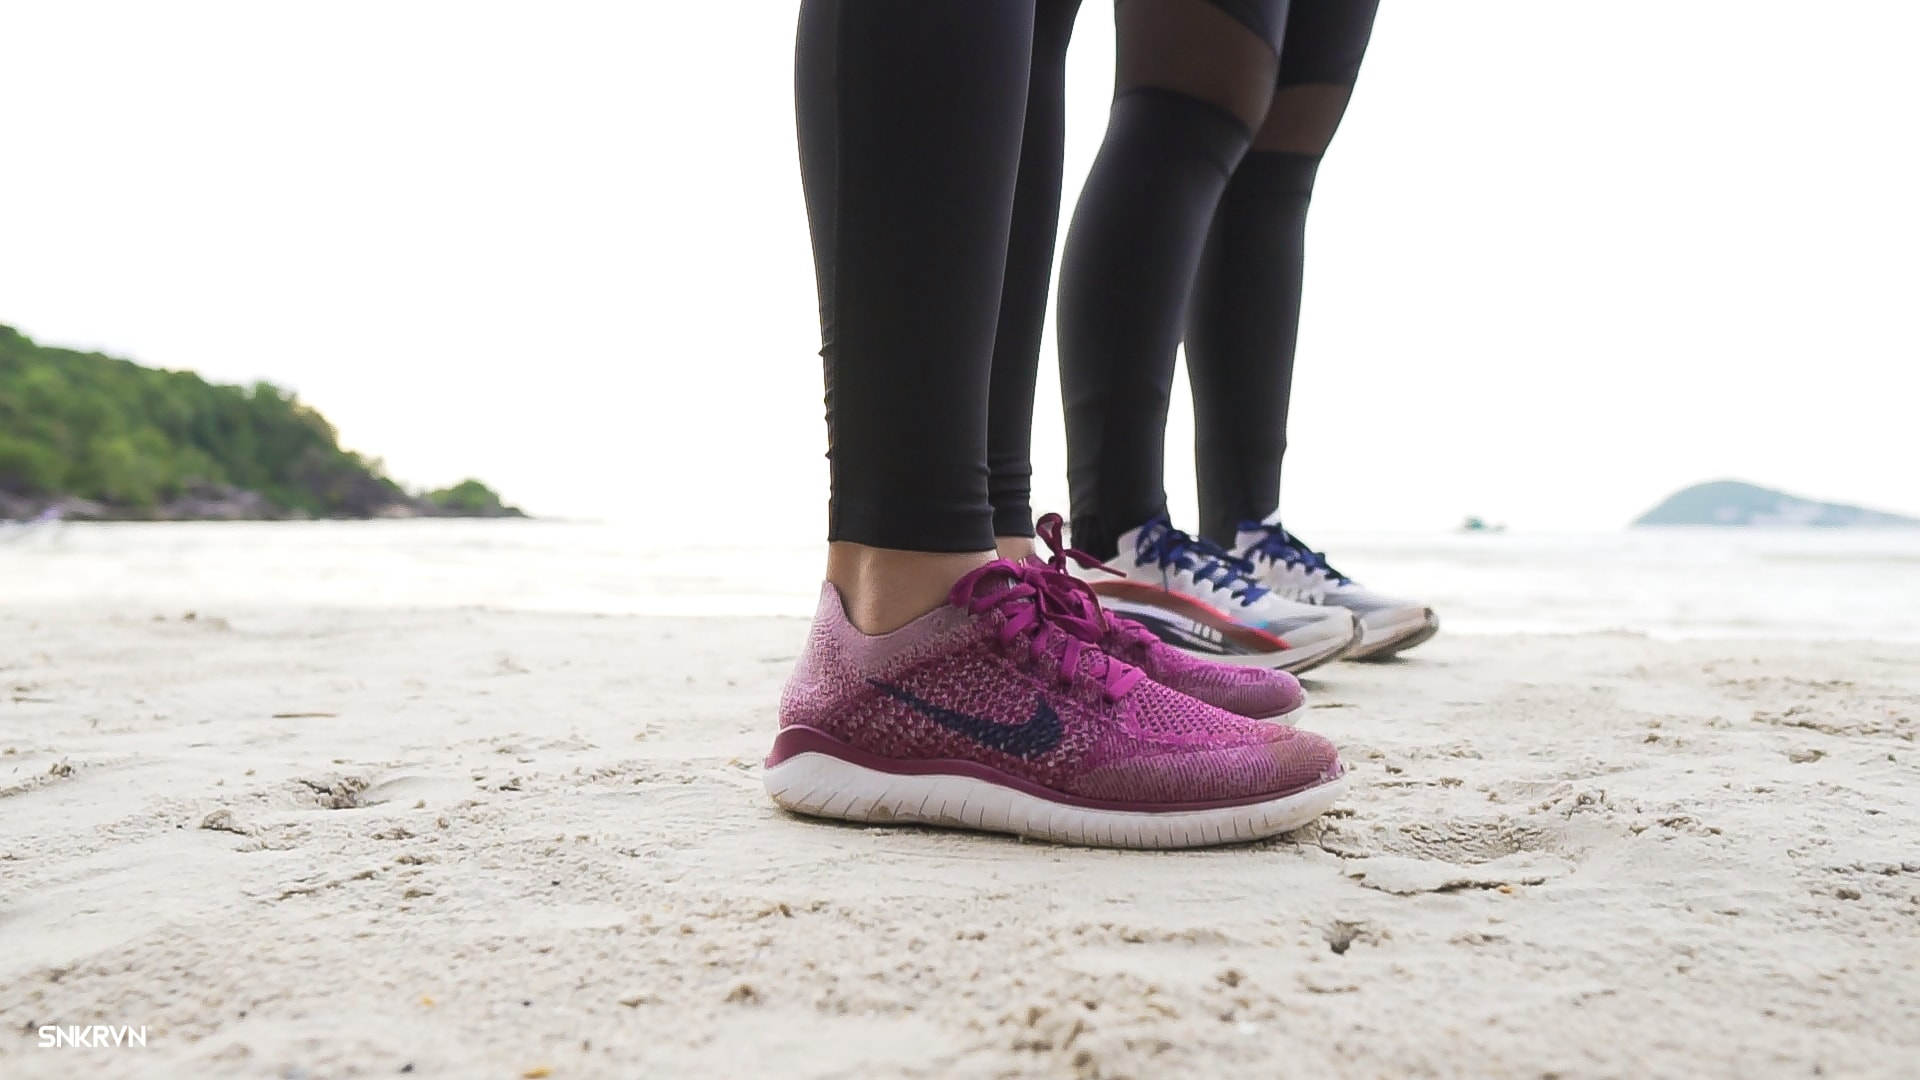 Experience your Nike Free RN Flyknit 2018 for the first time as a toddler